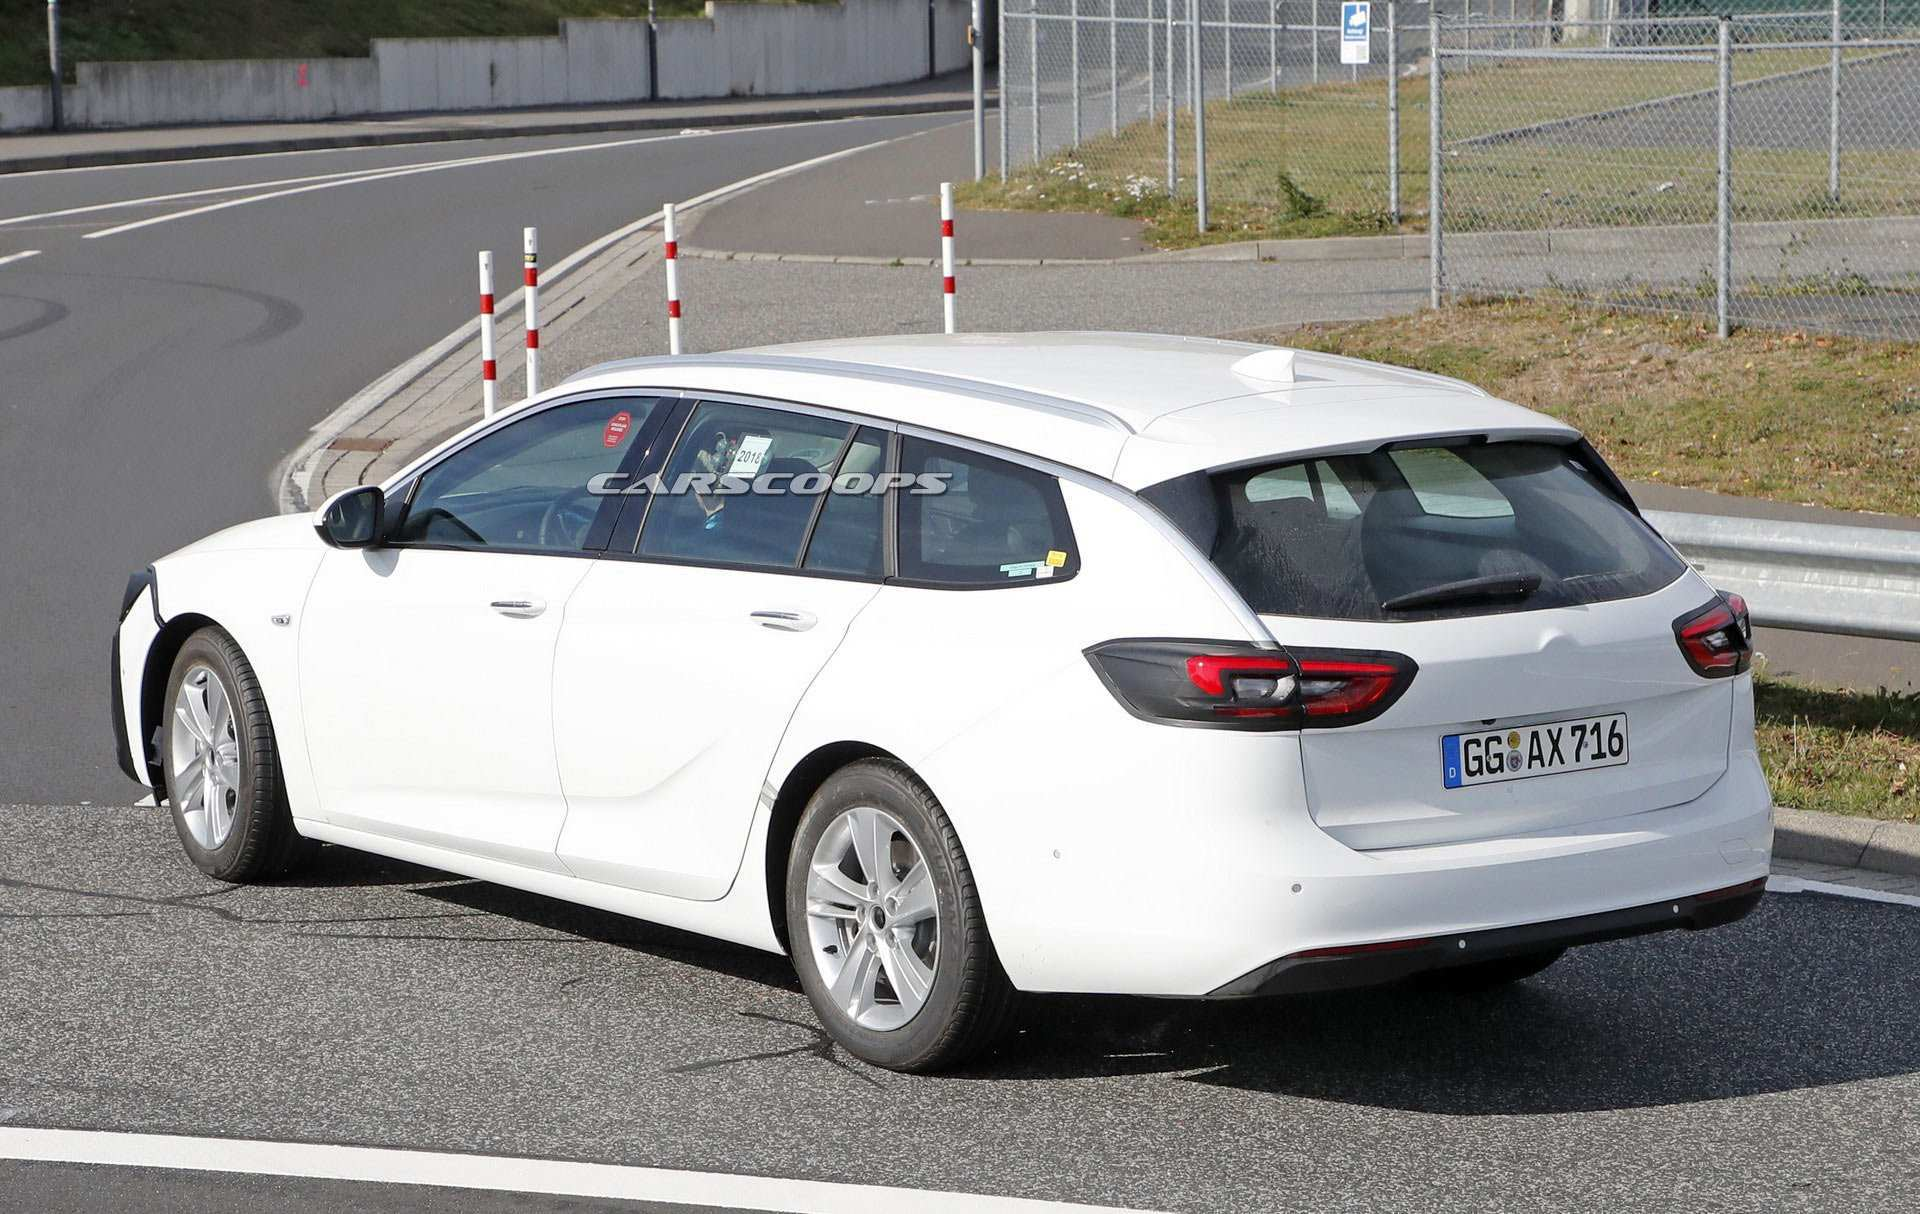 84 Concept of Yeni Opel Insignia 2020 Spesification by Yeni Opel Insignia 2020